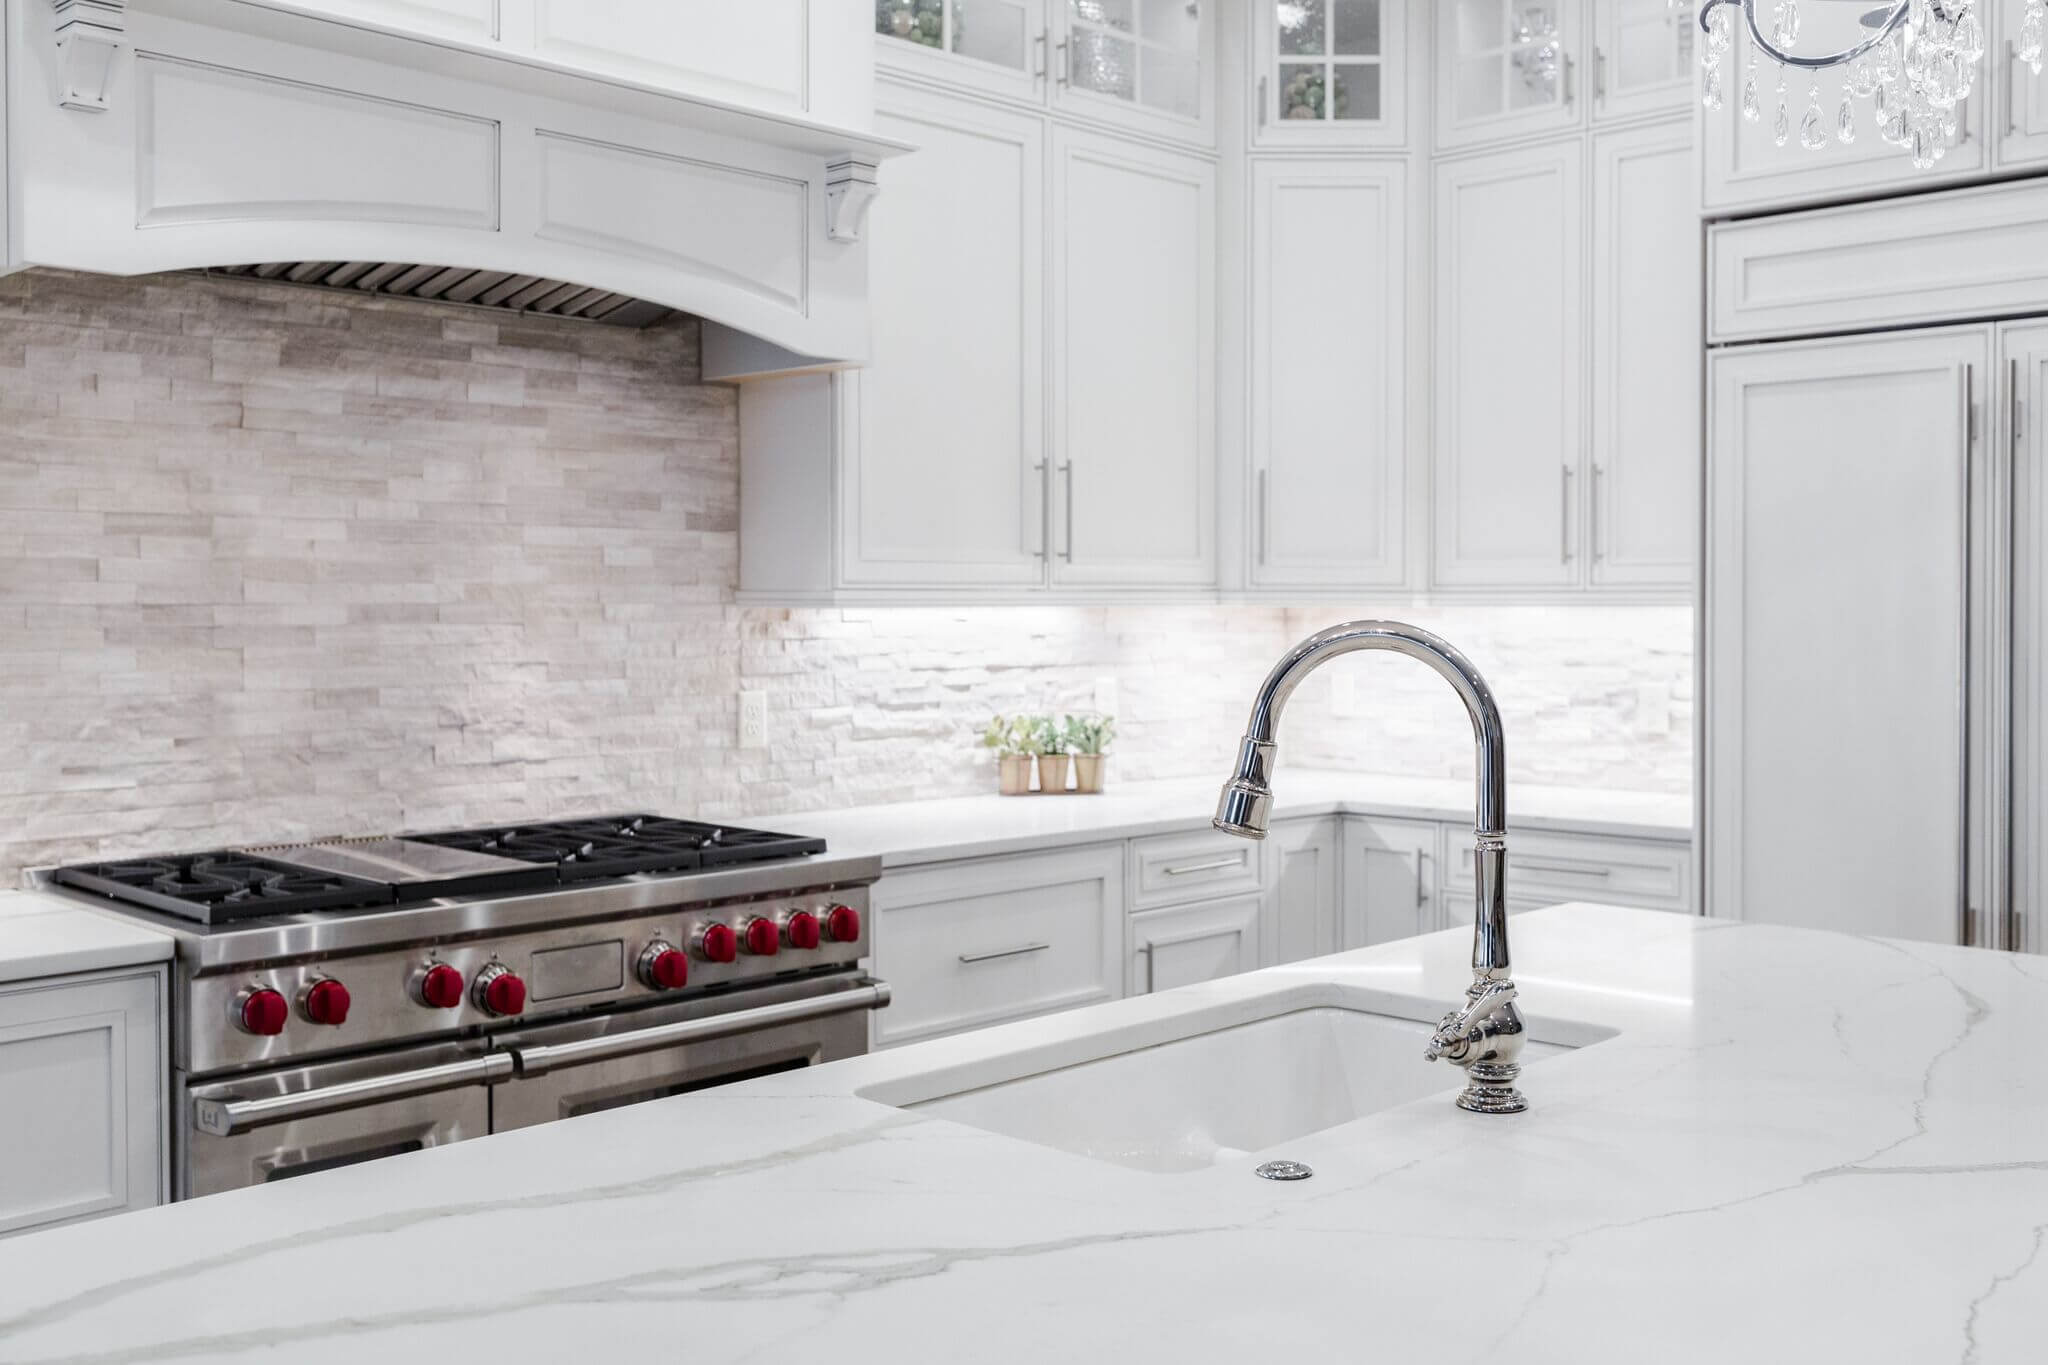 West Side Home Showcase Sims Lohman Fine Kitchens And